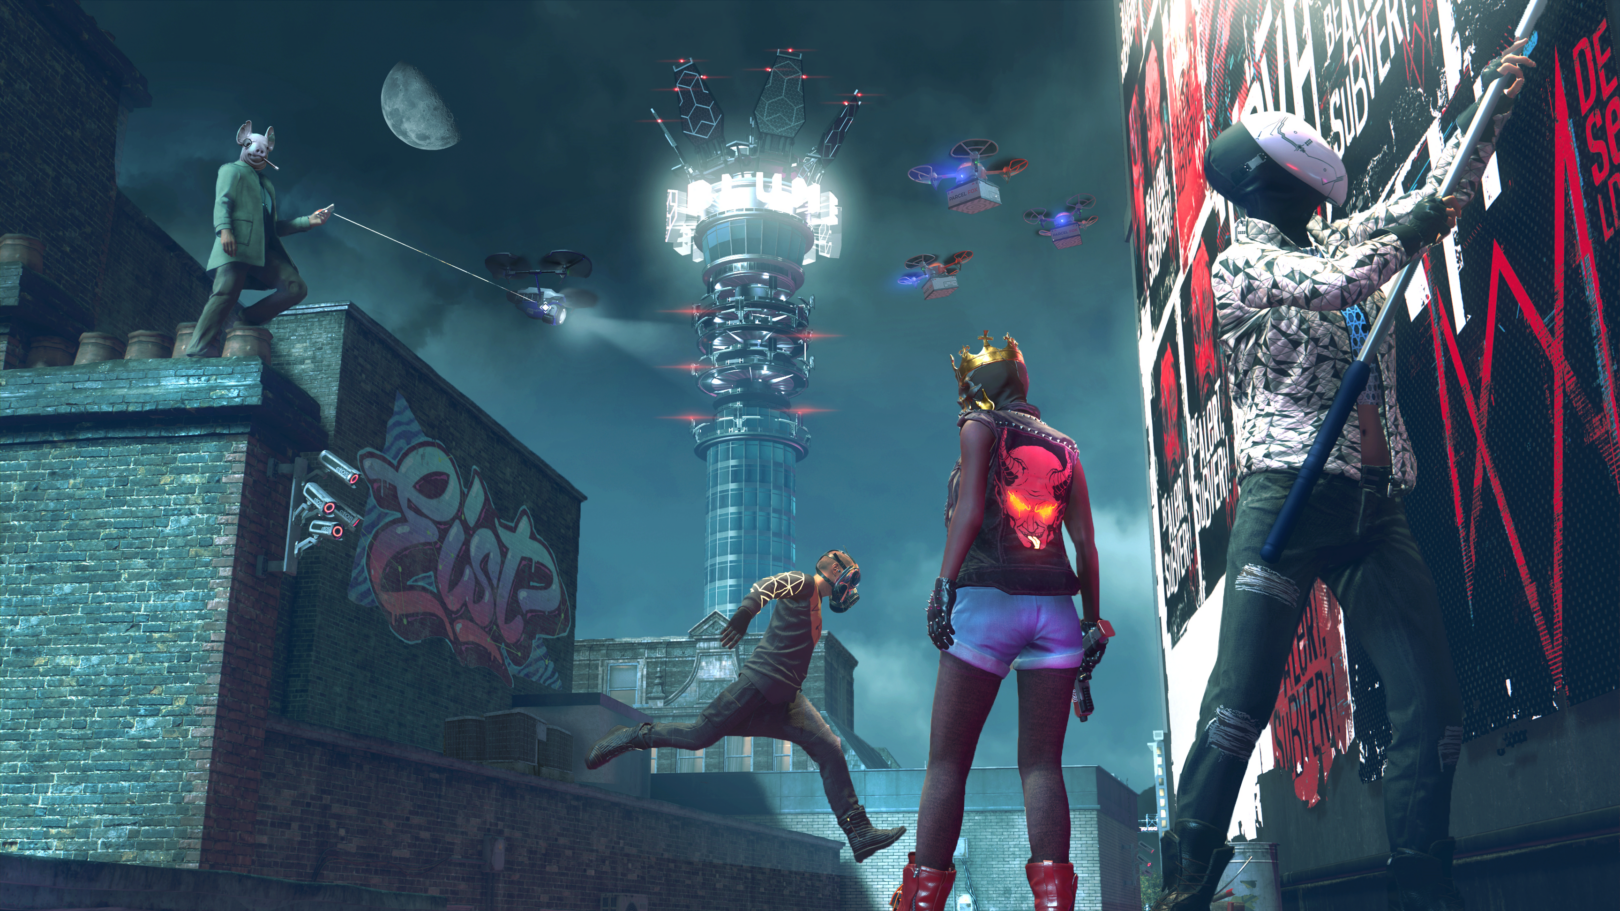 Watch Dogs Legion finally gets its online mode next month, and it's completely free